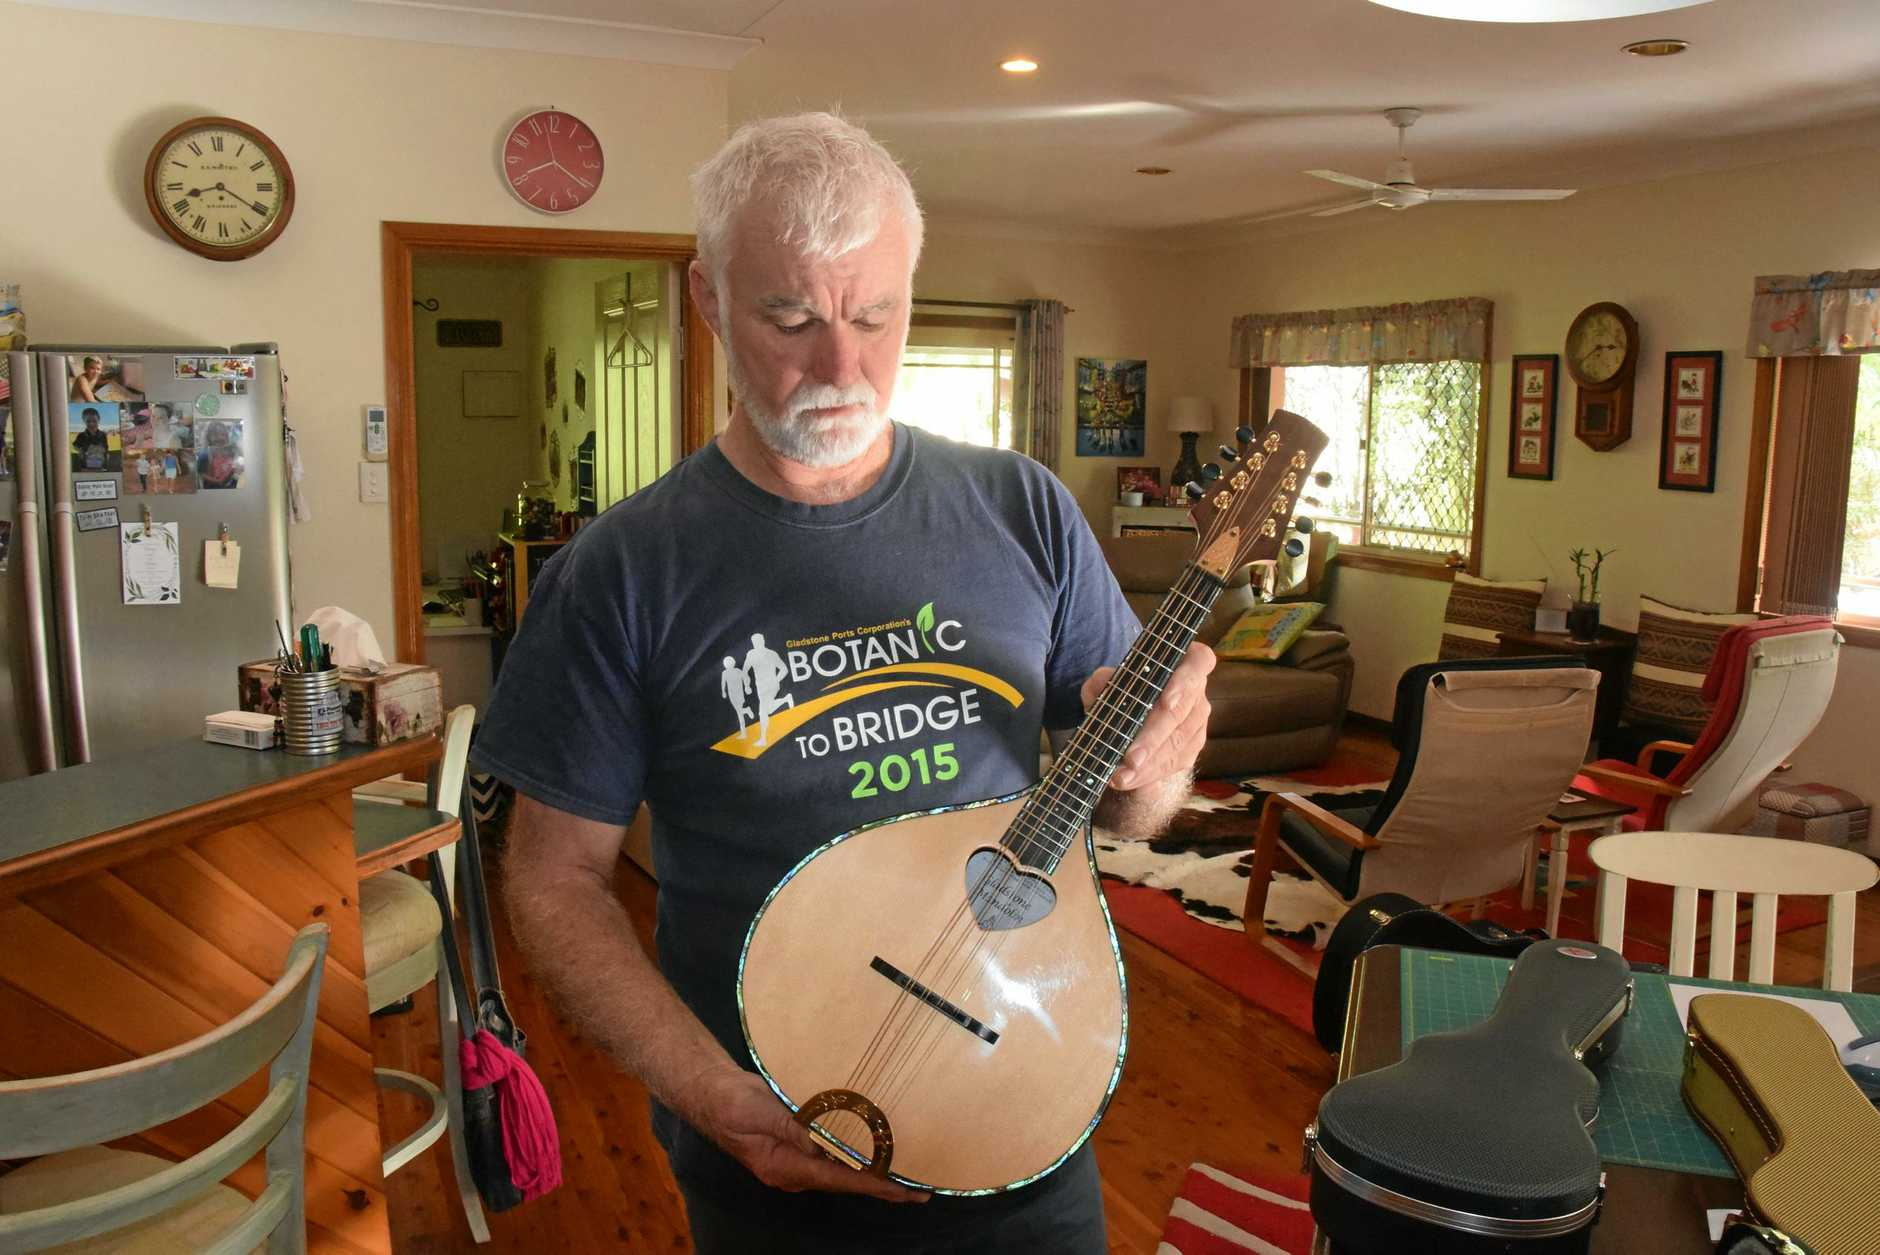 MUSIC MAKER: Graham Long holds one of the guitars he has made